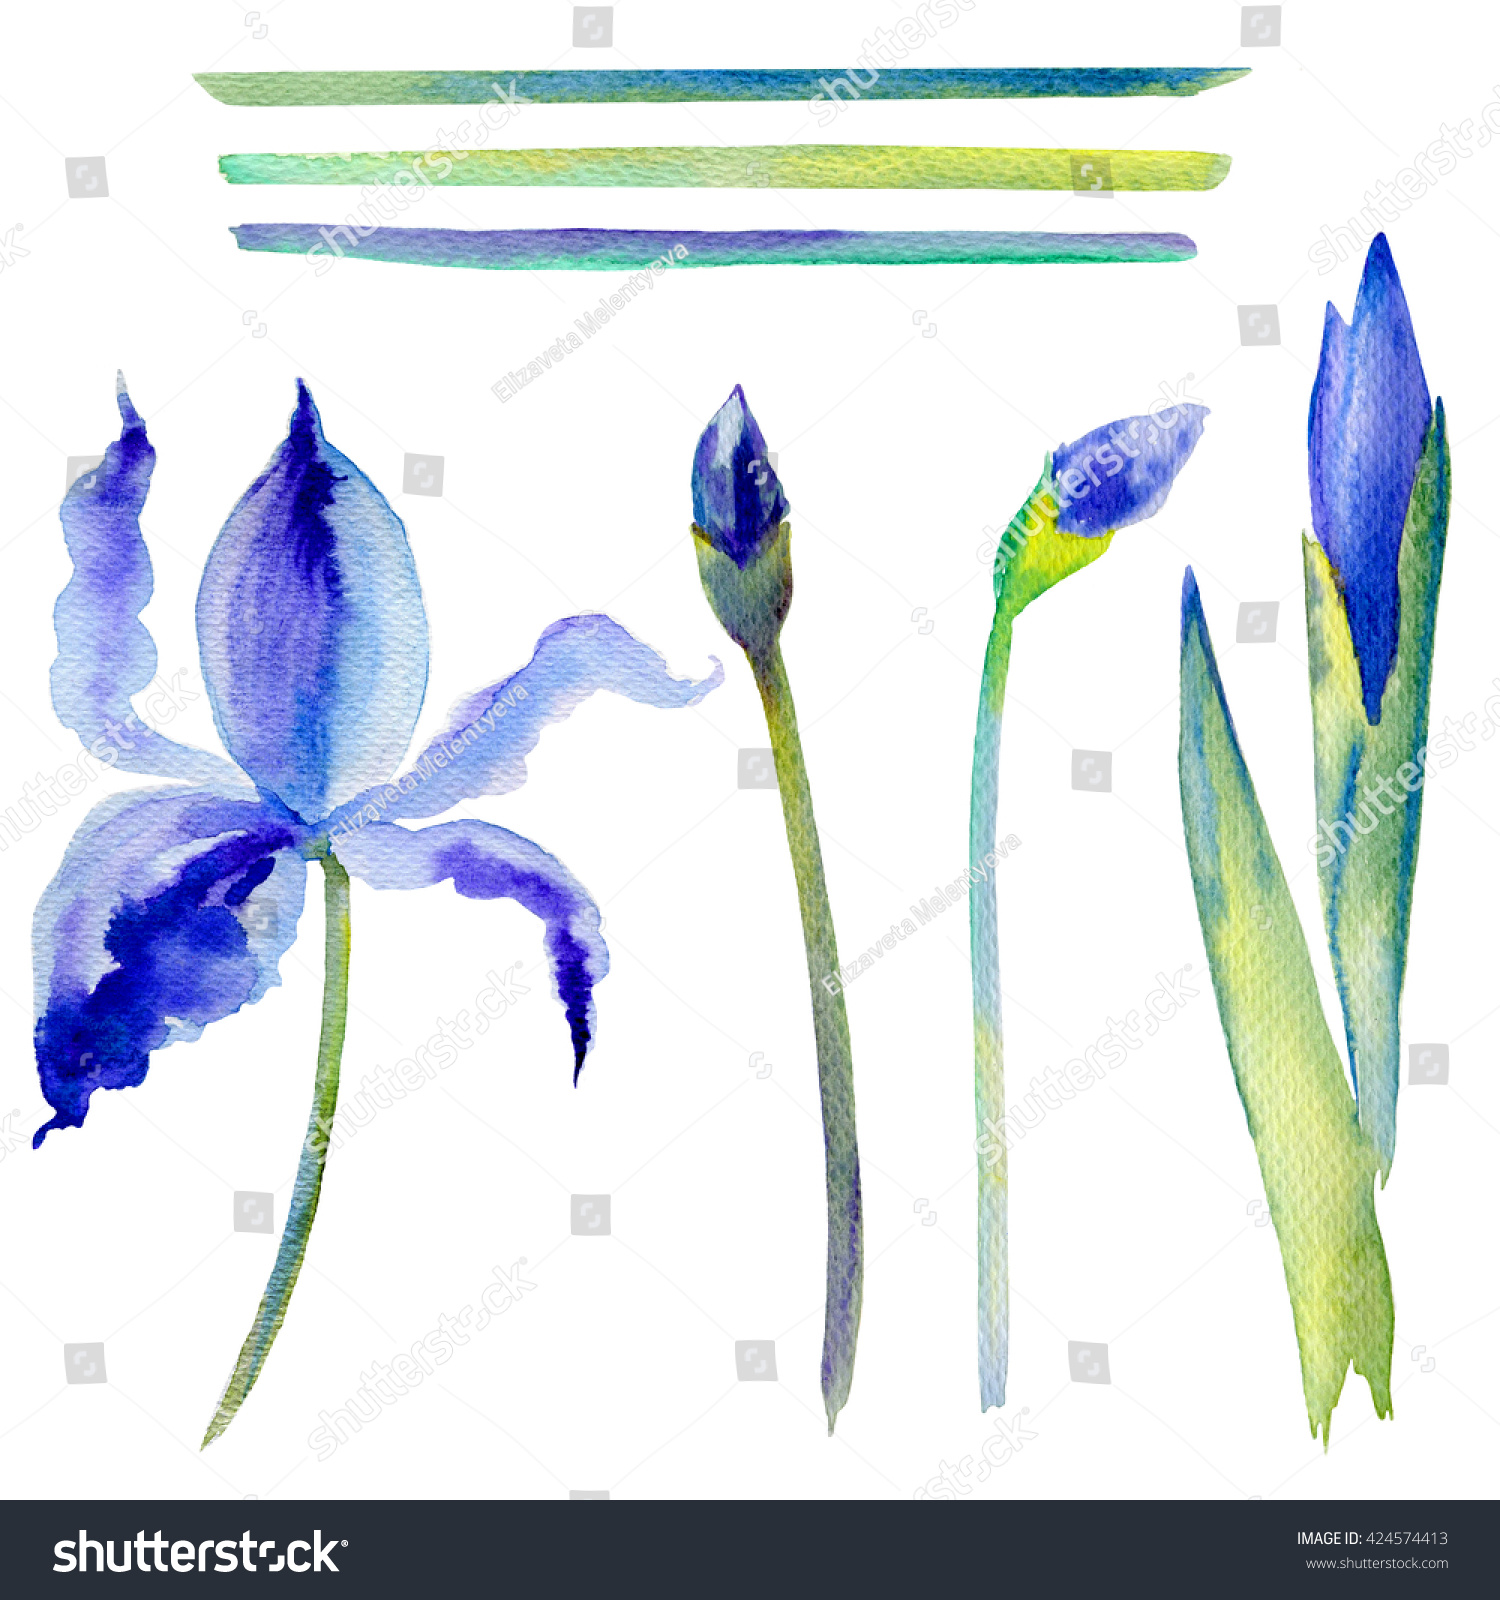 Watercolor iris flower bud hand drawn stock illustration 424574413 watercolor iris flower bud hand drawn botanical illustration isolated on white background for wedding invitation izmirmasajfo